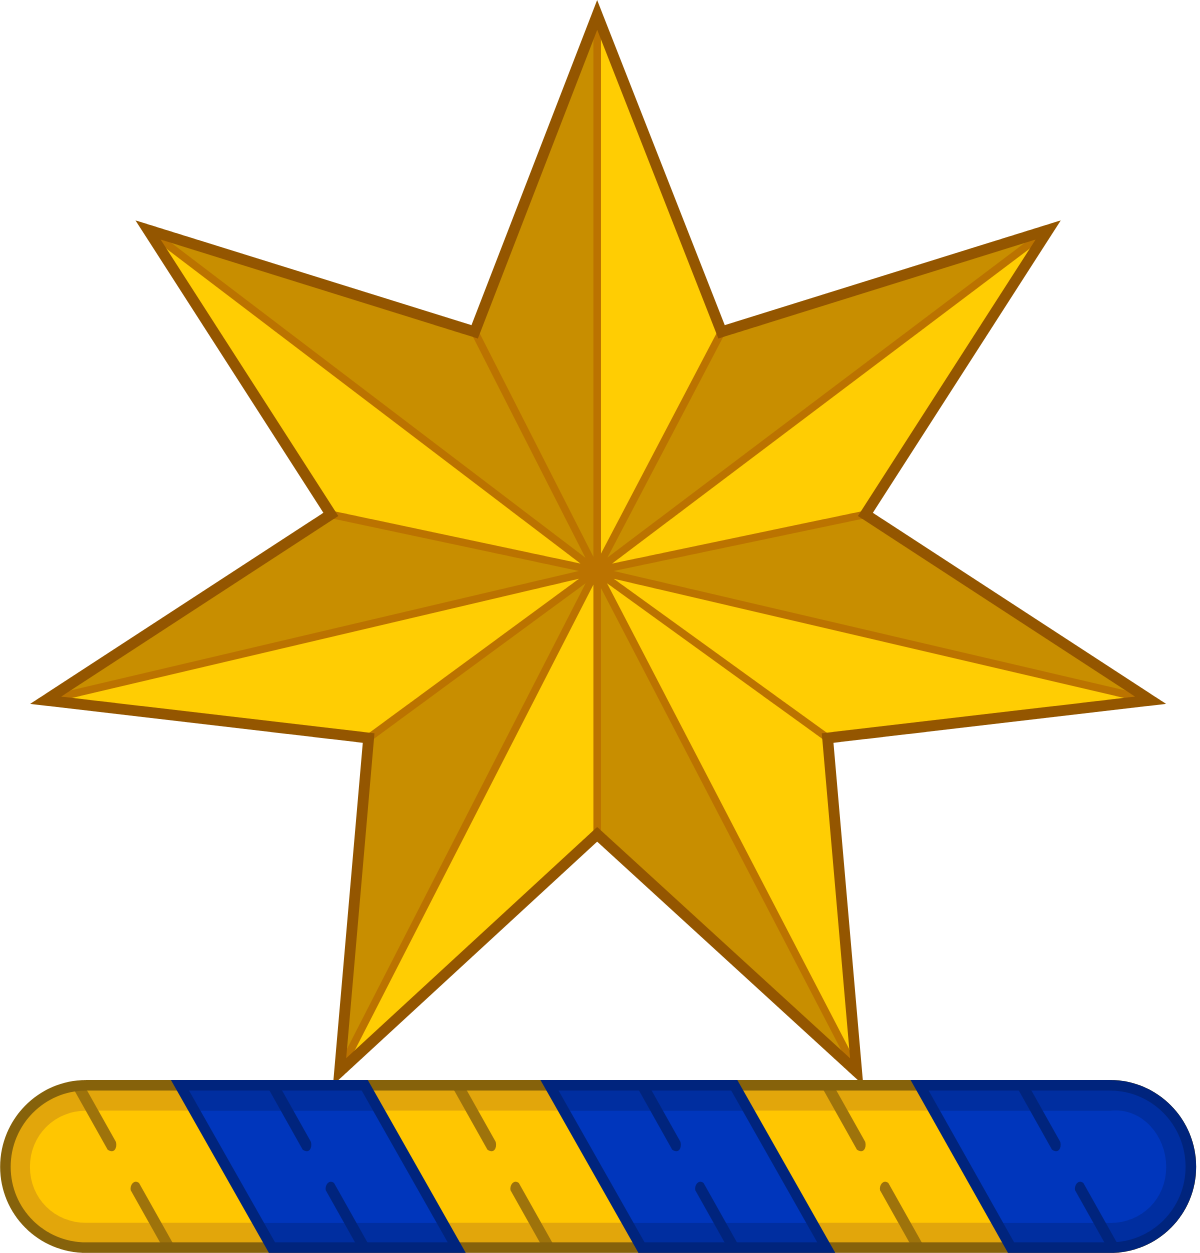 7 point star clipart image free download Commonwealth Star - Wikipedia | badges charges etc | Pinterest ... image free download